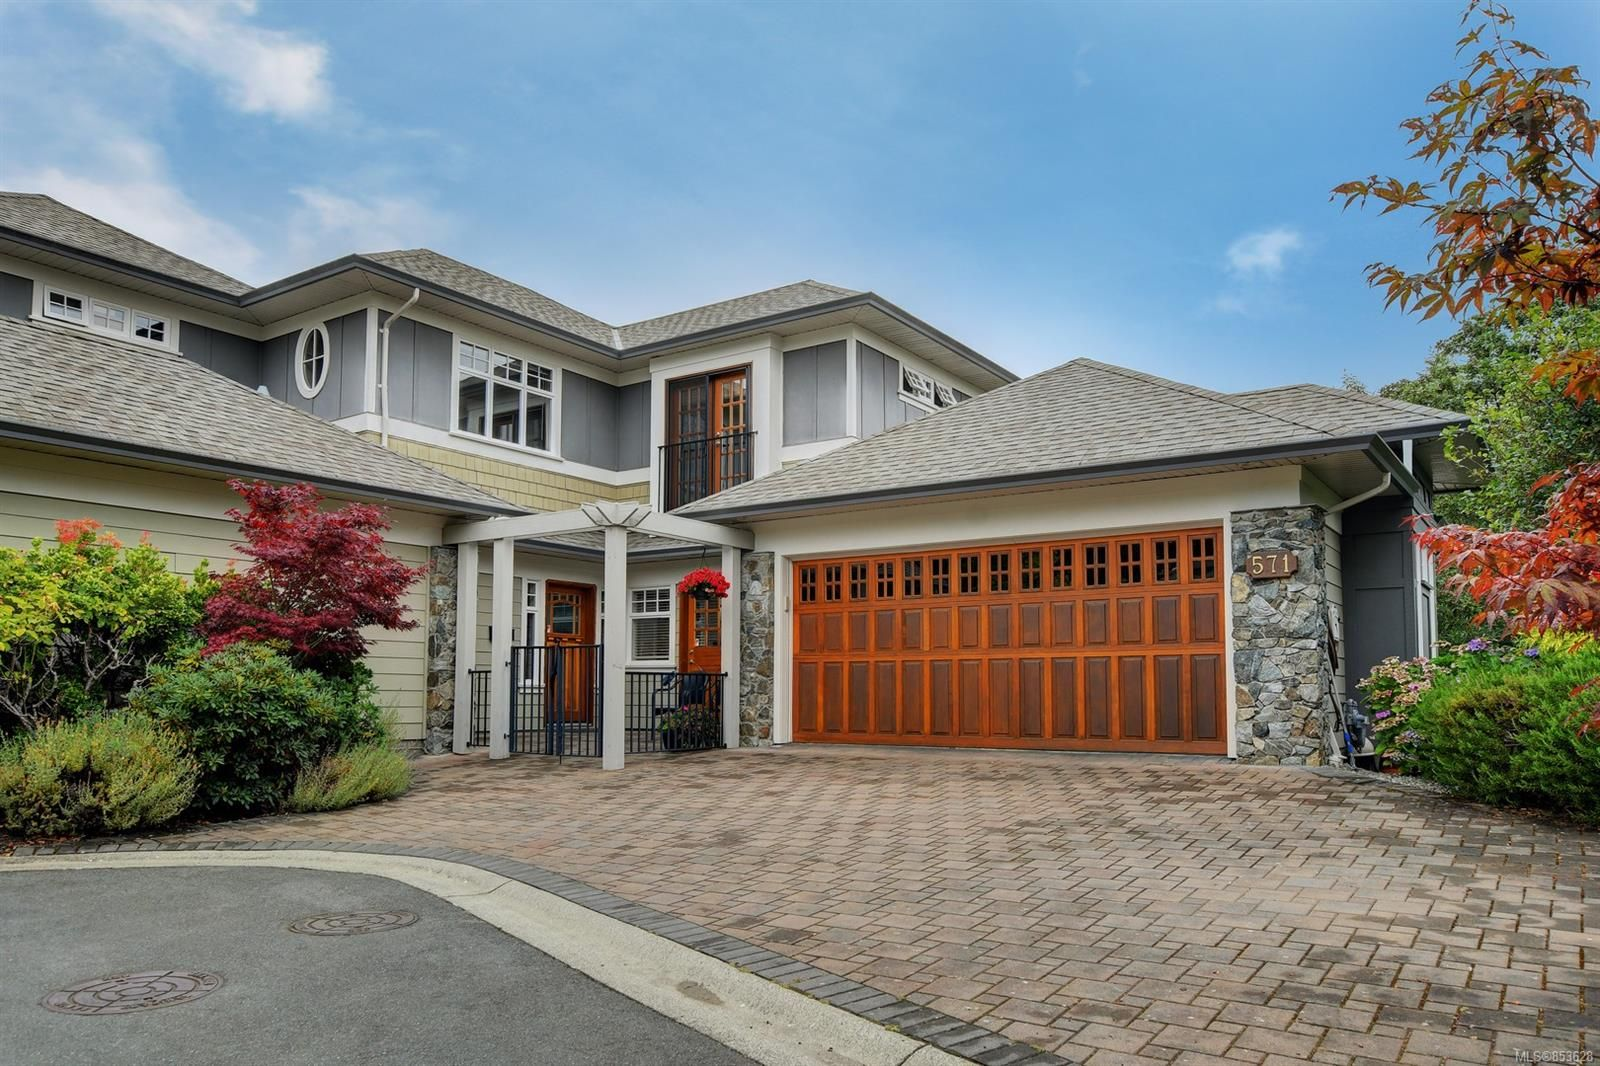 Main Photo: 571 Caselton Pl in : SW Royal Oak Row/Townhouse for sale (Saanich West)  : MLS®# 853628